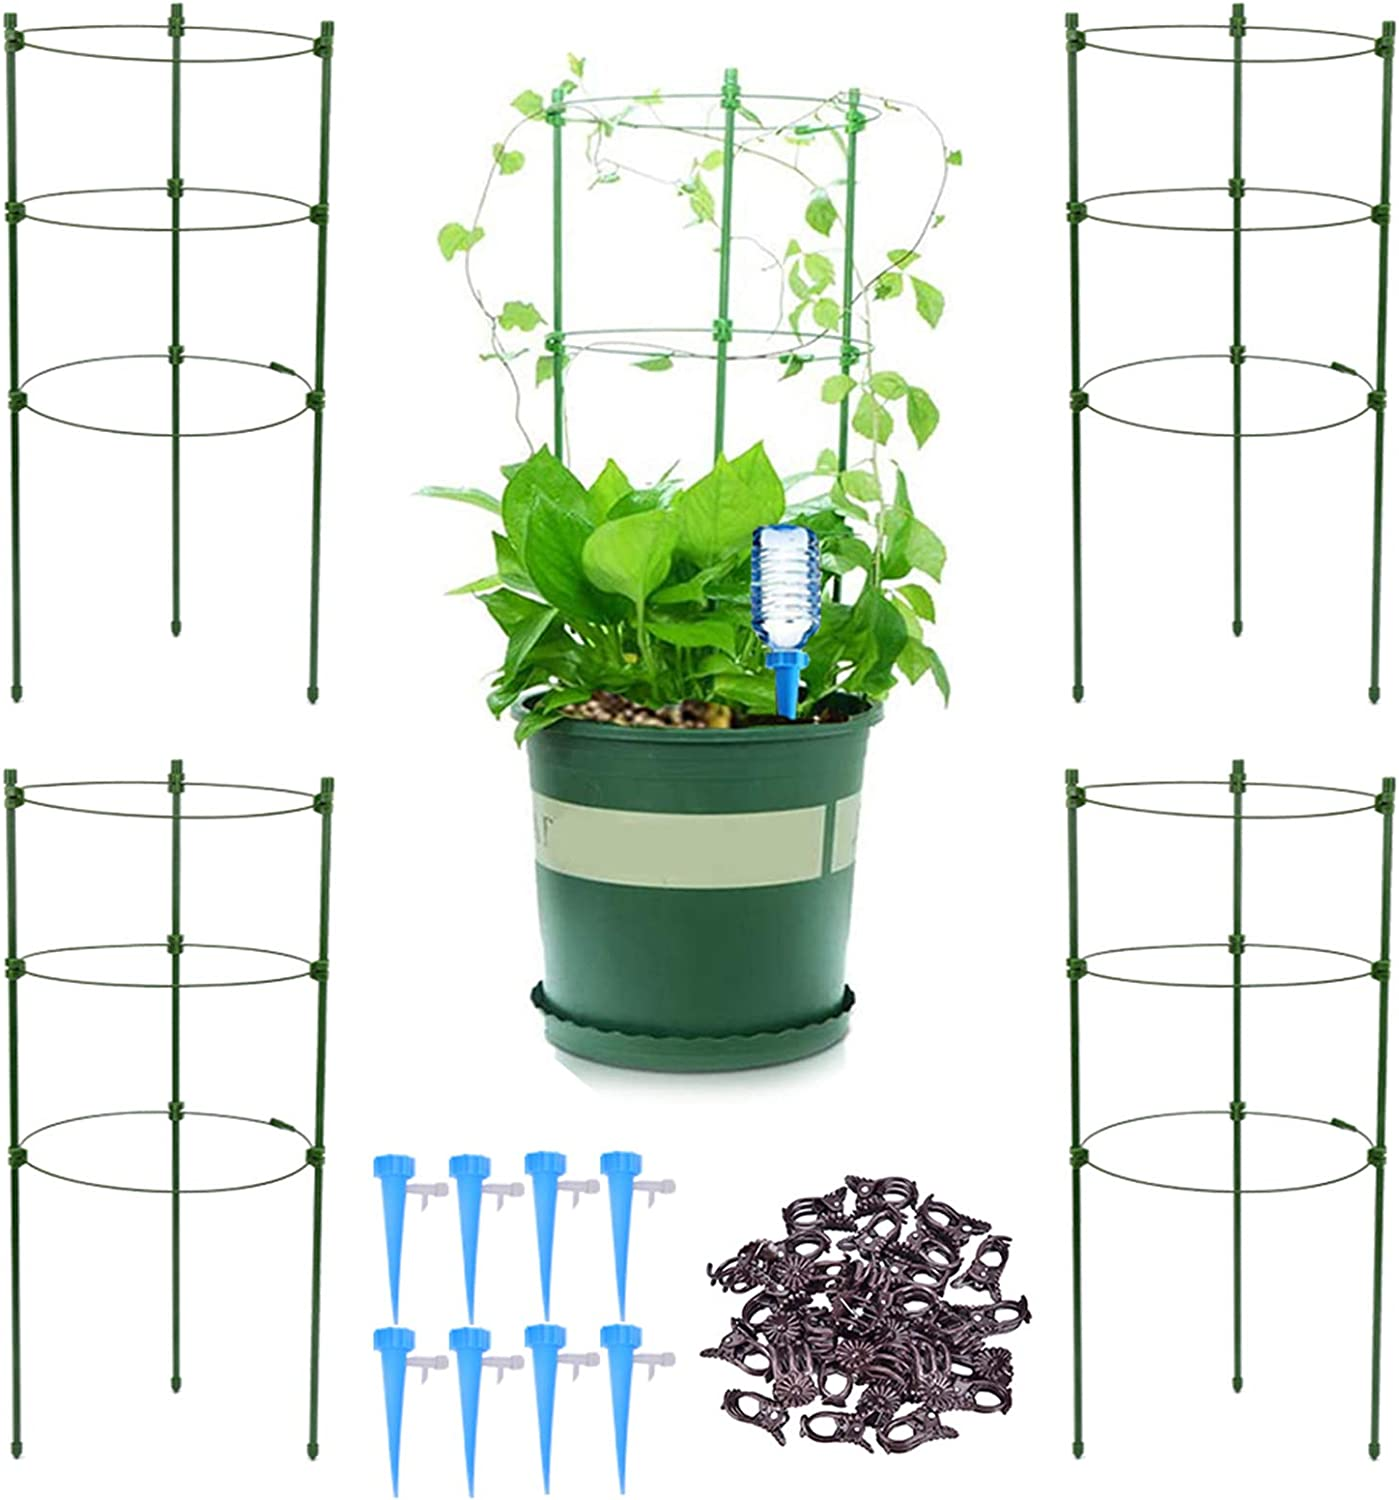 4 Pack Garden Plant Support Tomato Cage Plant Trellis Kits with 4 Self Watering Spikes and 20 Plant Clips 18 Upgrade 18 Trellis for Climbing Plants